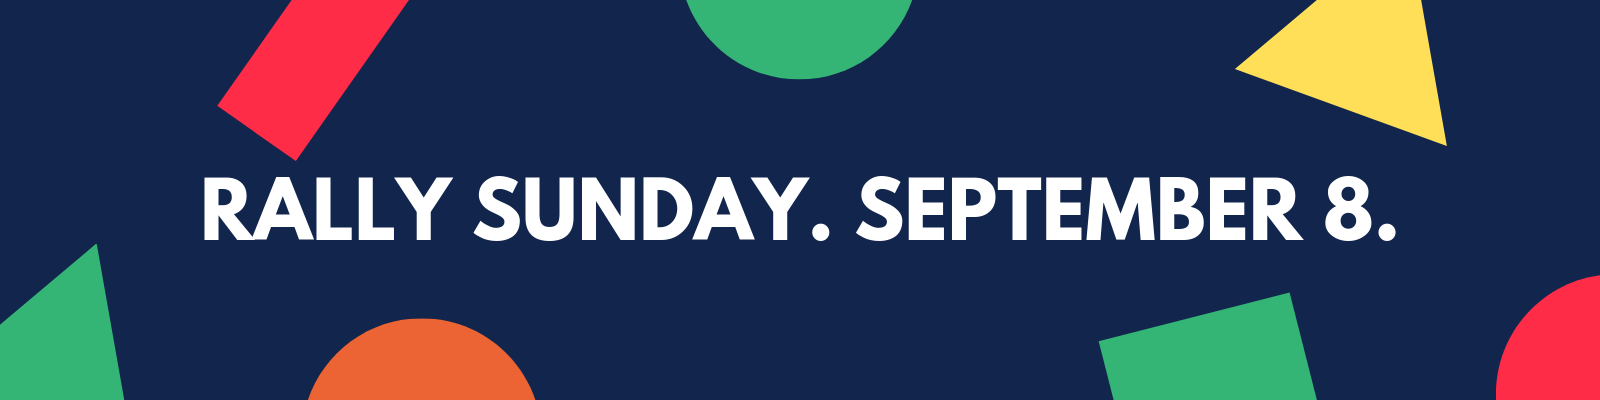 Join us as we head back to Sunday School on Rally Sunday, September 8!